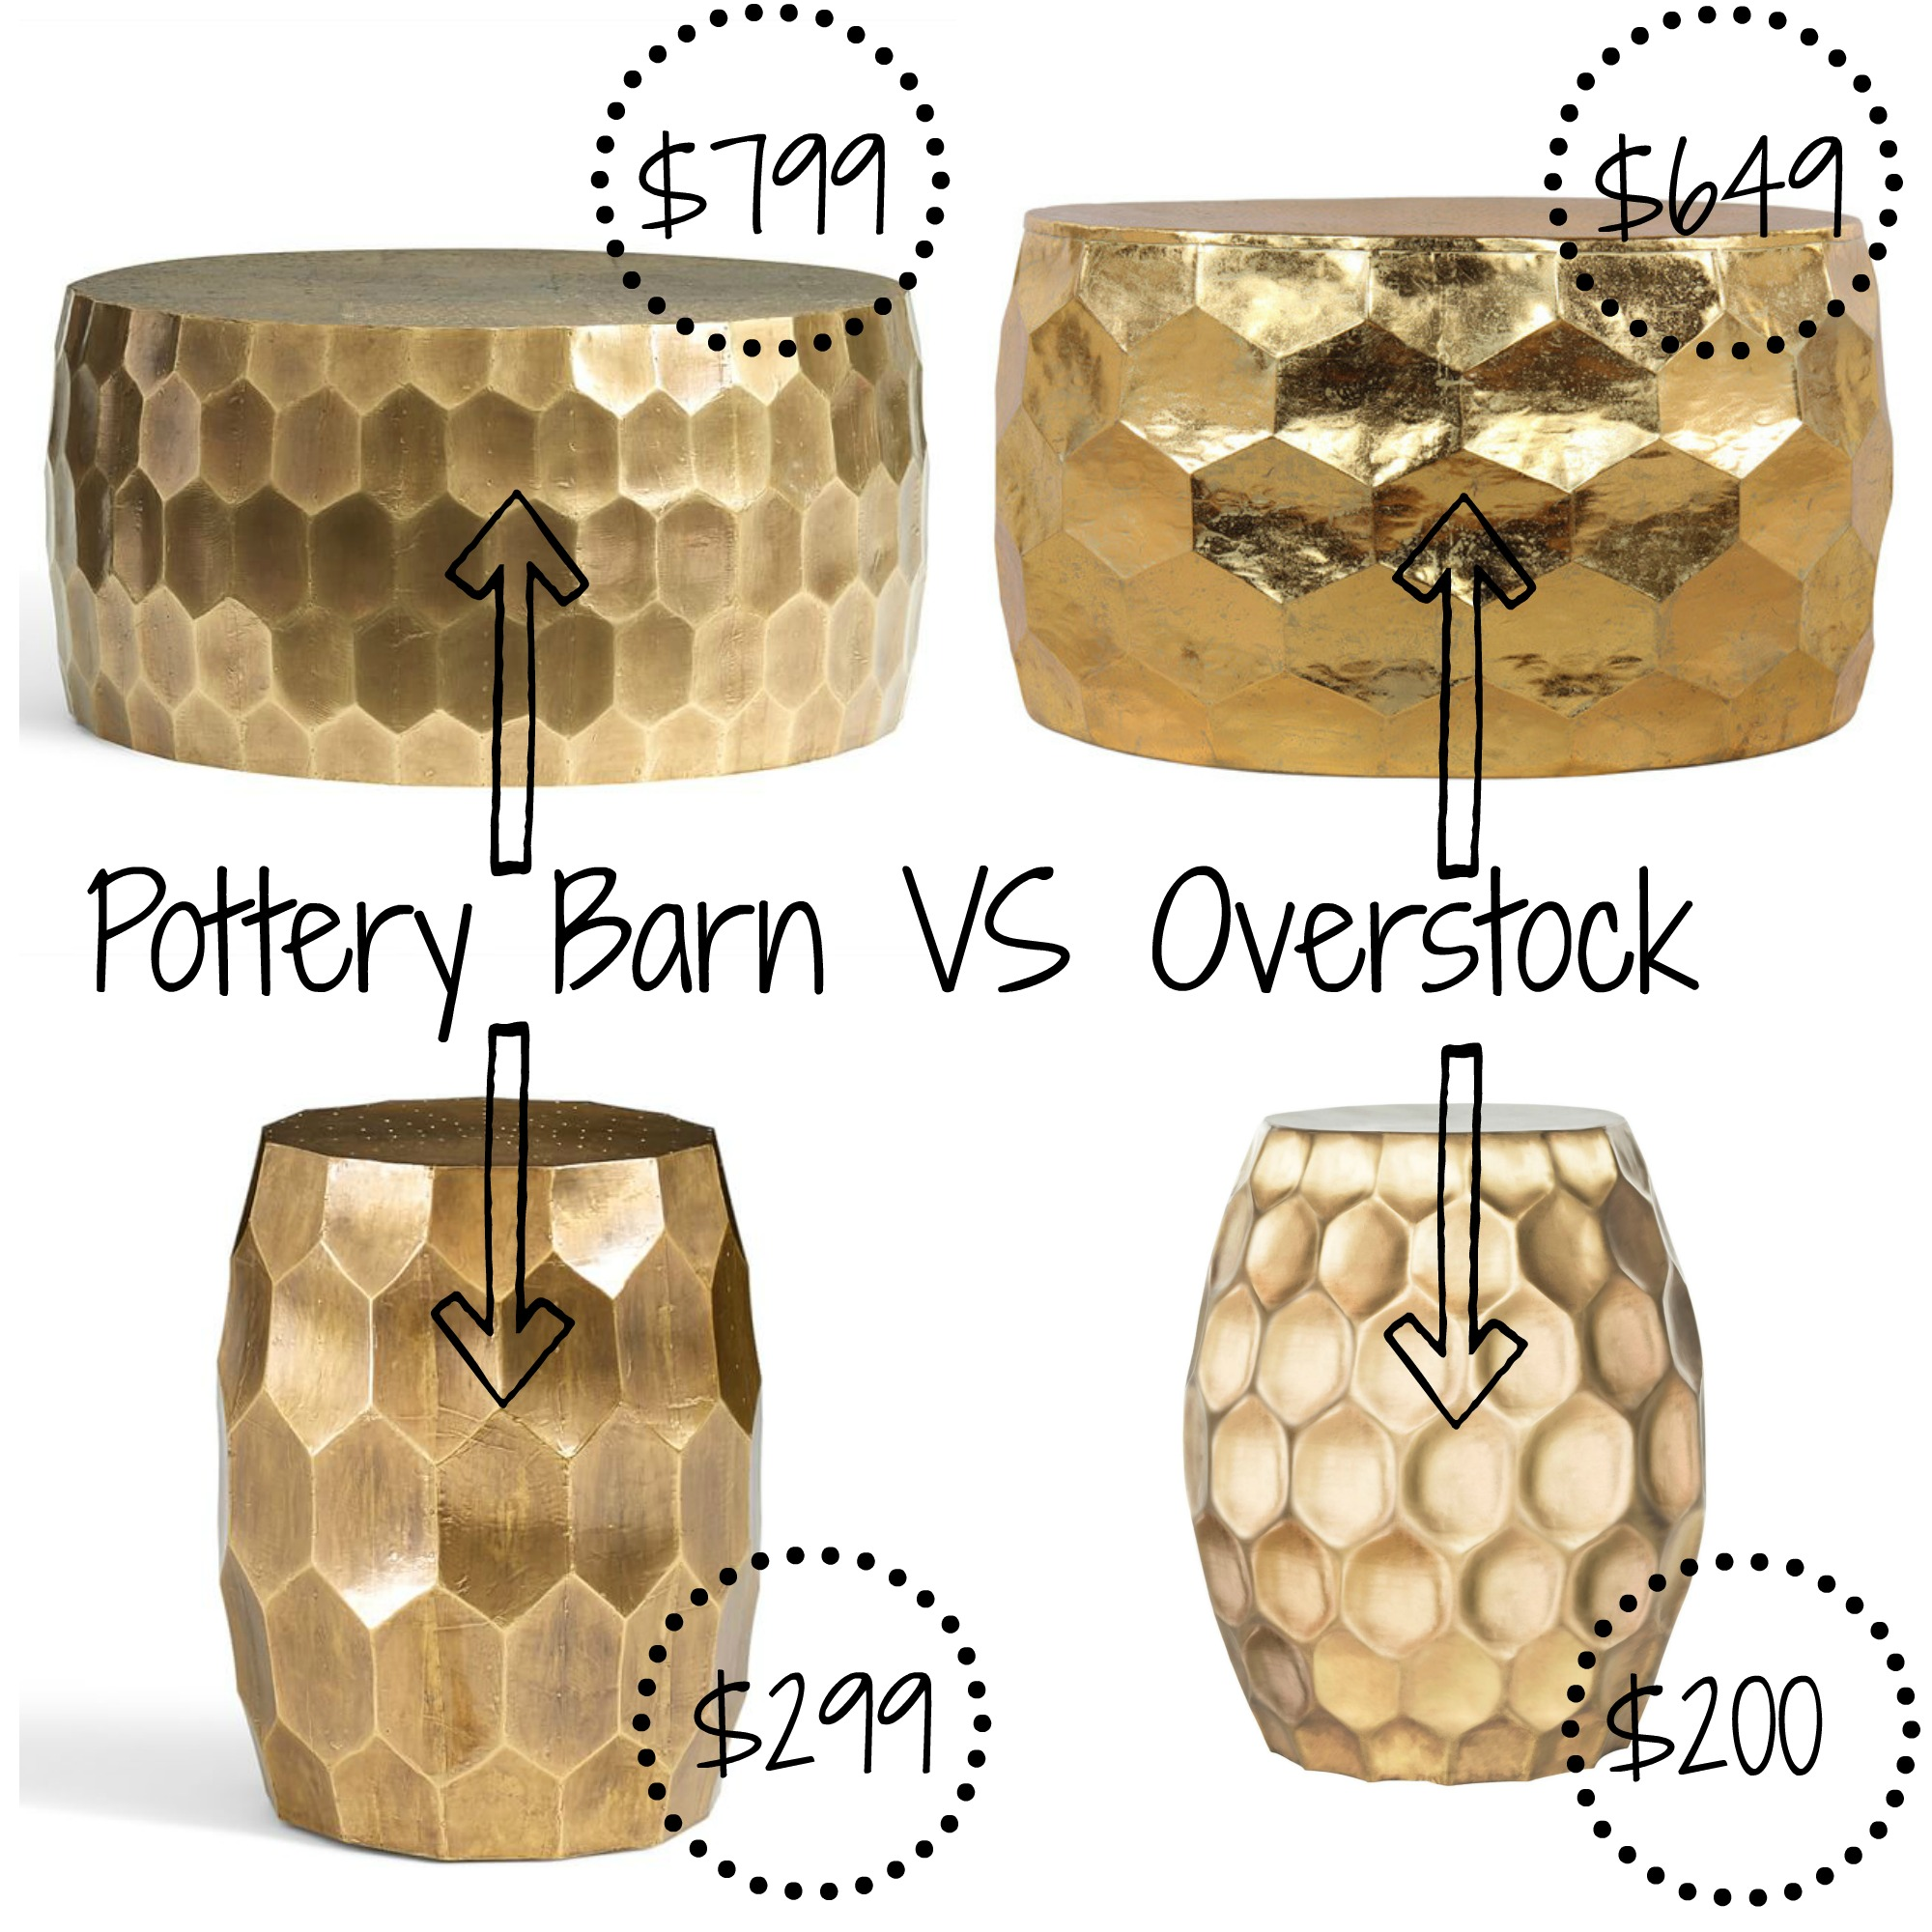 pottery barn decor look alikes metaltablecollage flower accent table vintage metal clad tables baroque round decorative tablecloth adjustable furniture legs nautical themed end